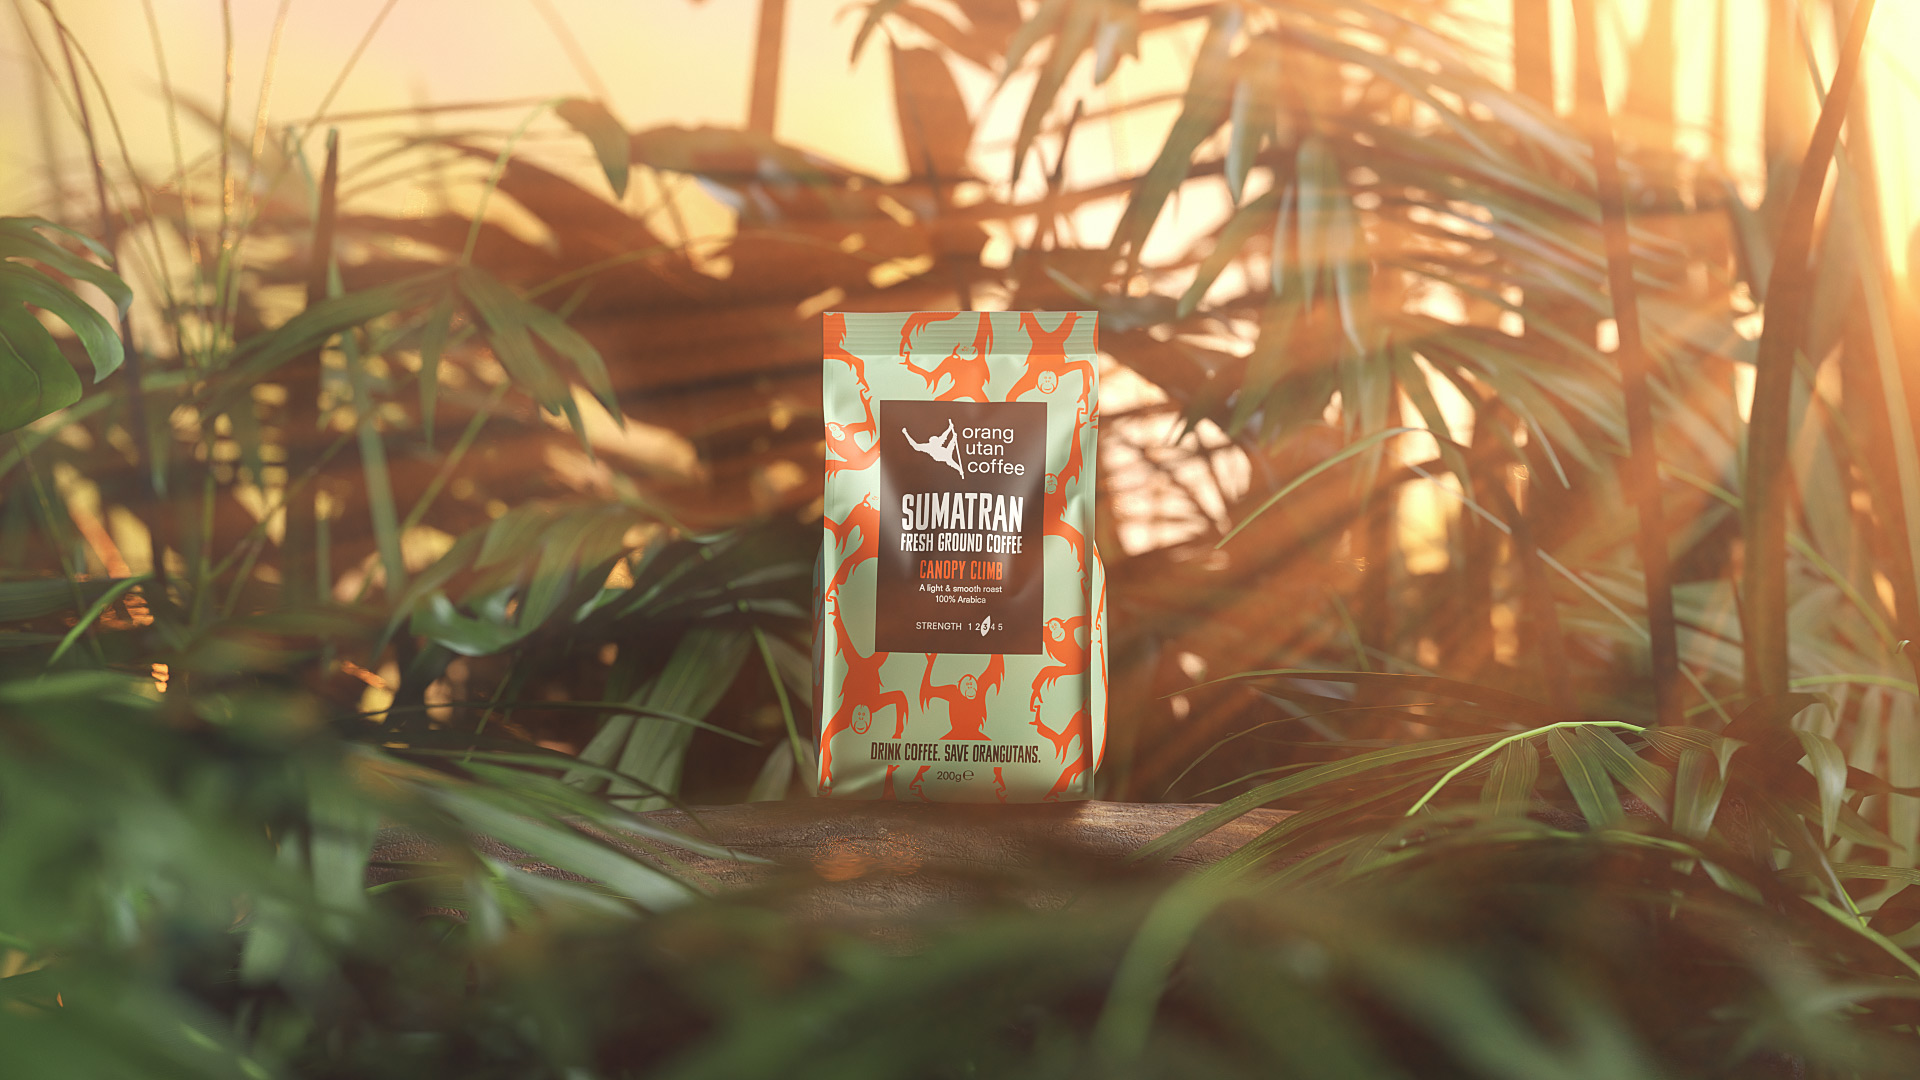 coffee-packaging-cgi-visualisation-28